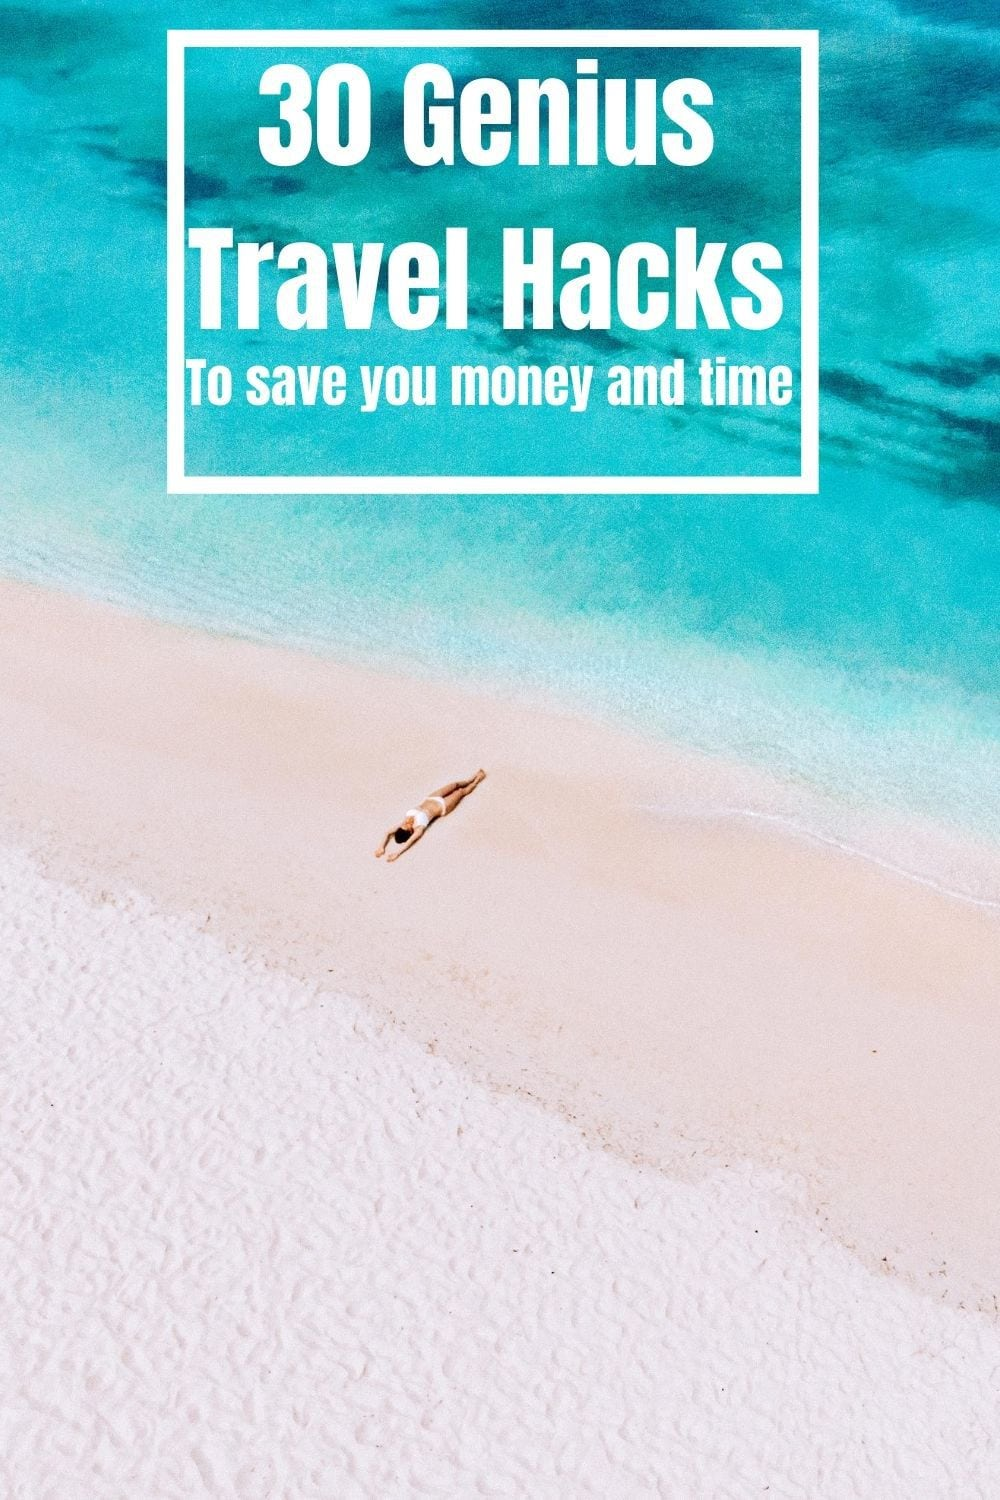 30 Genius Travel Hacks To save you money and time